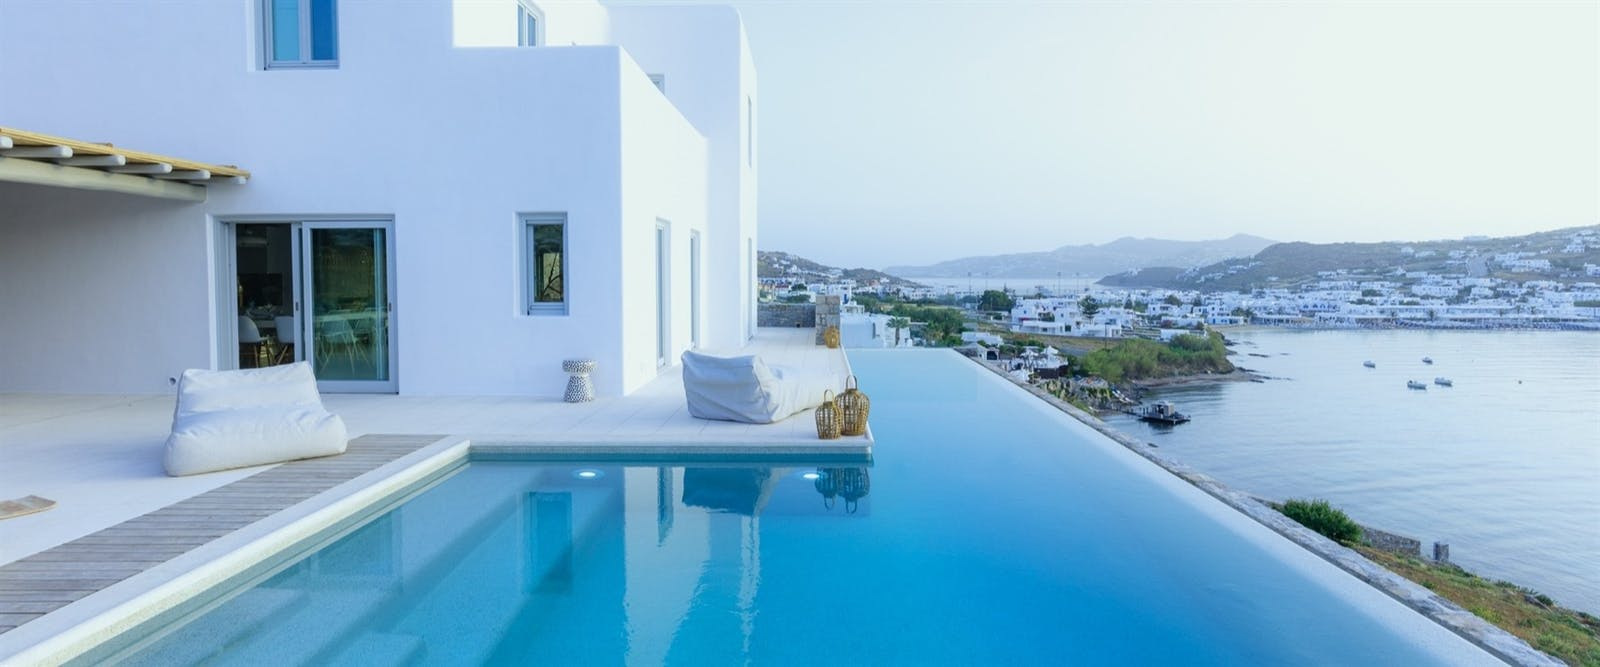 The Villa at Kenshõ Boutique Hotel & Suites, Ornos, Greece